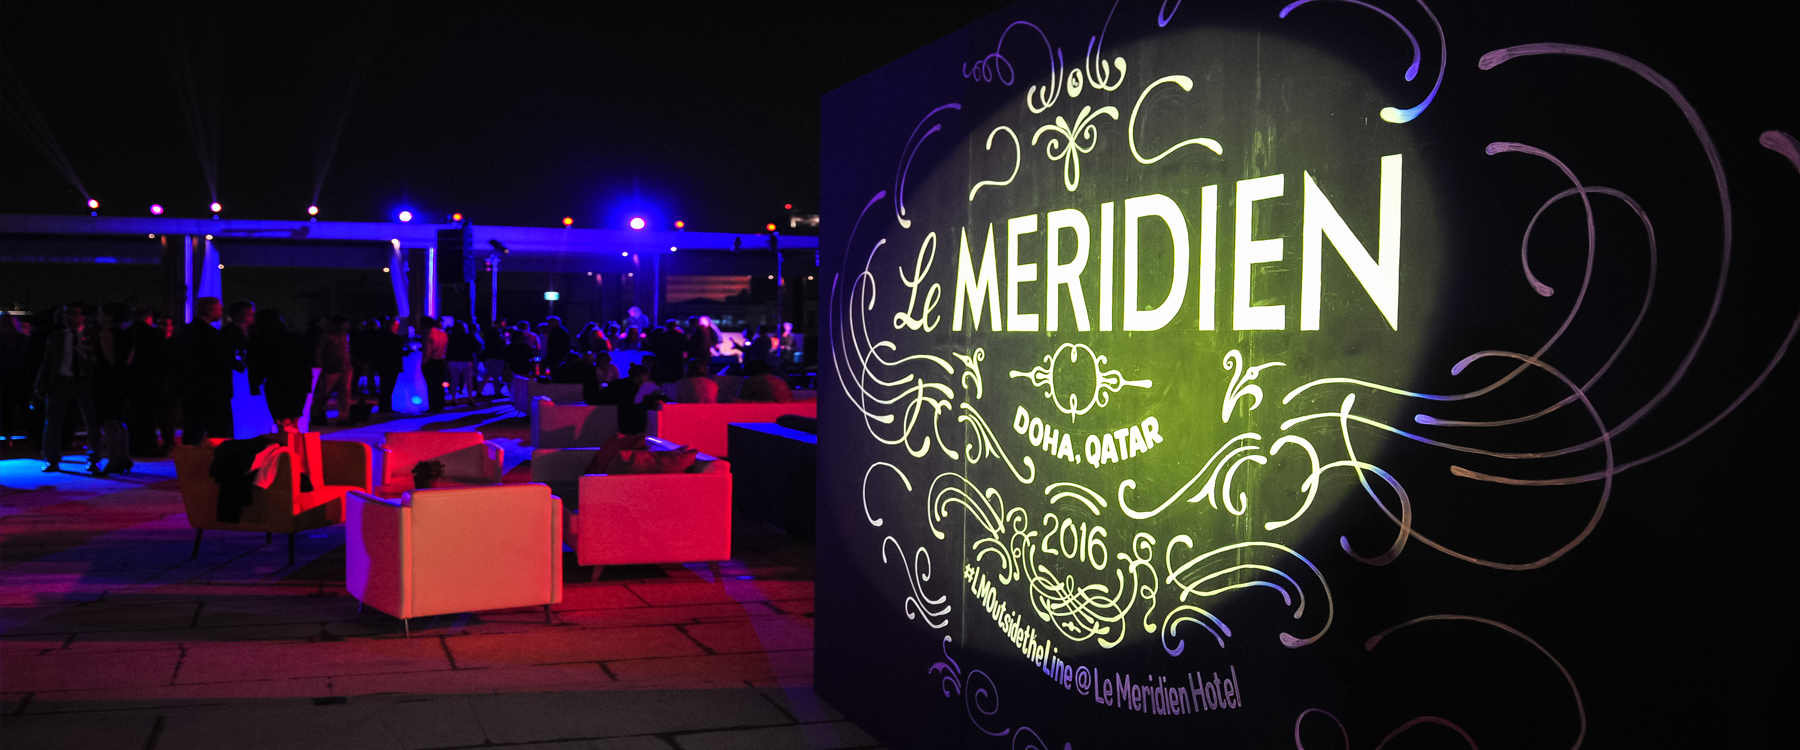 le meridien starwood conference